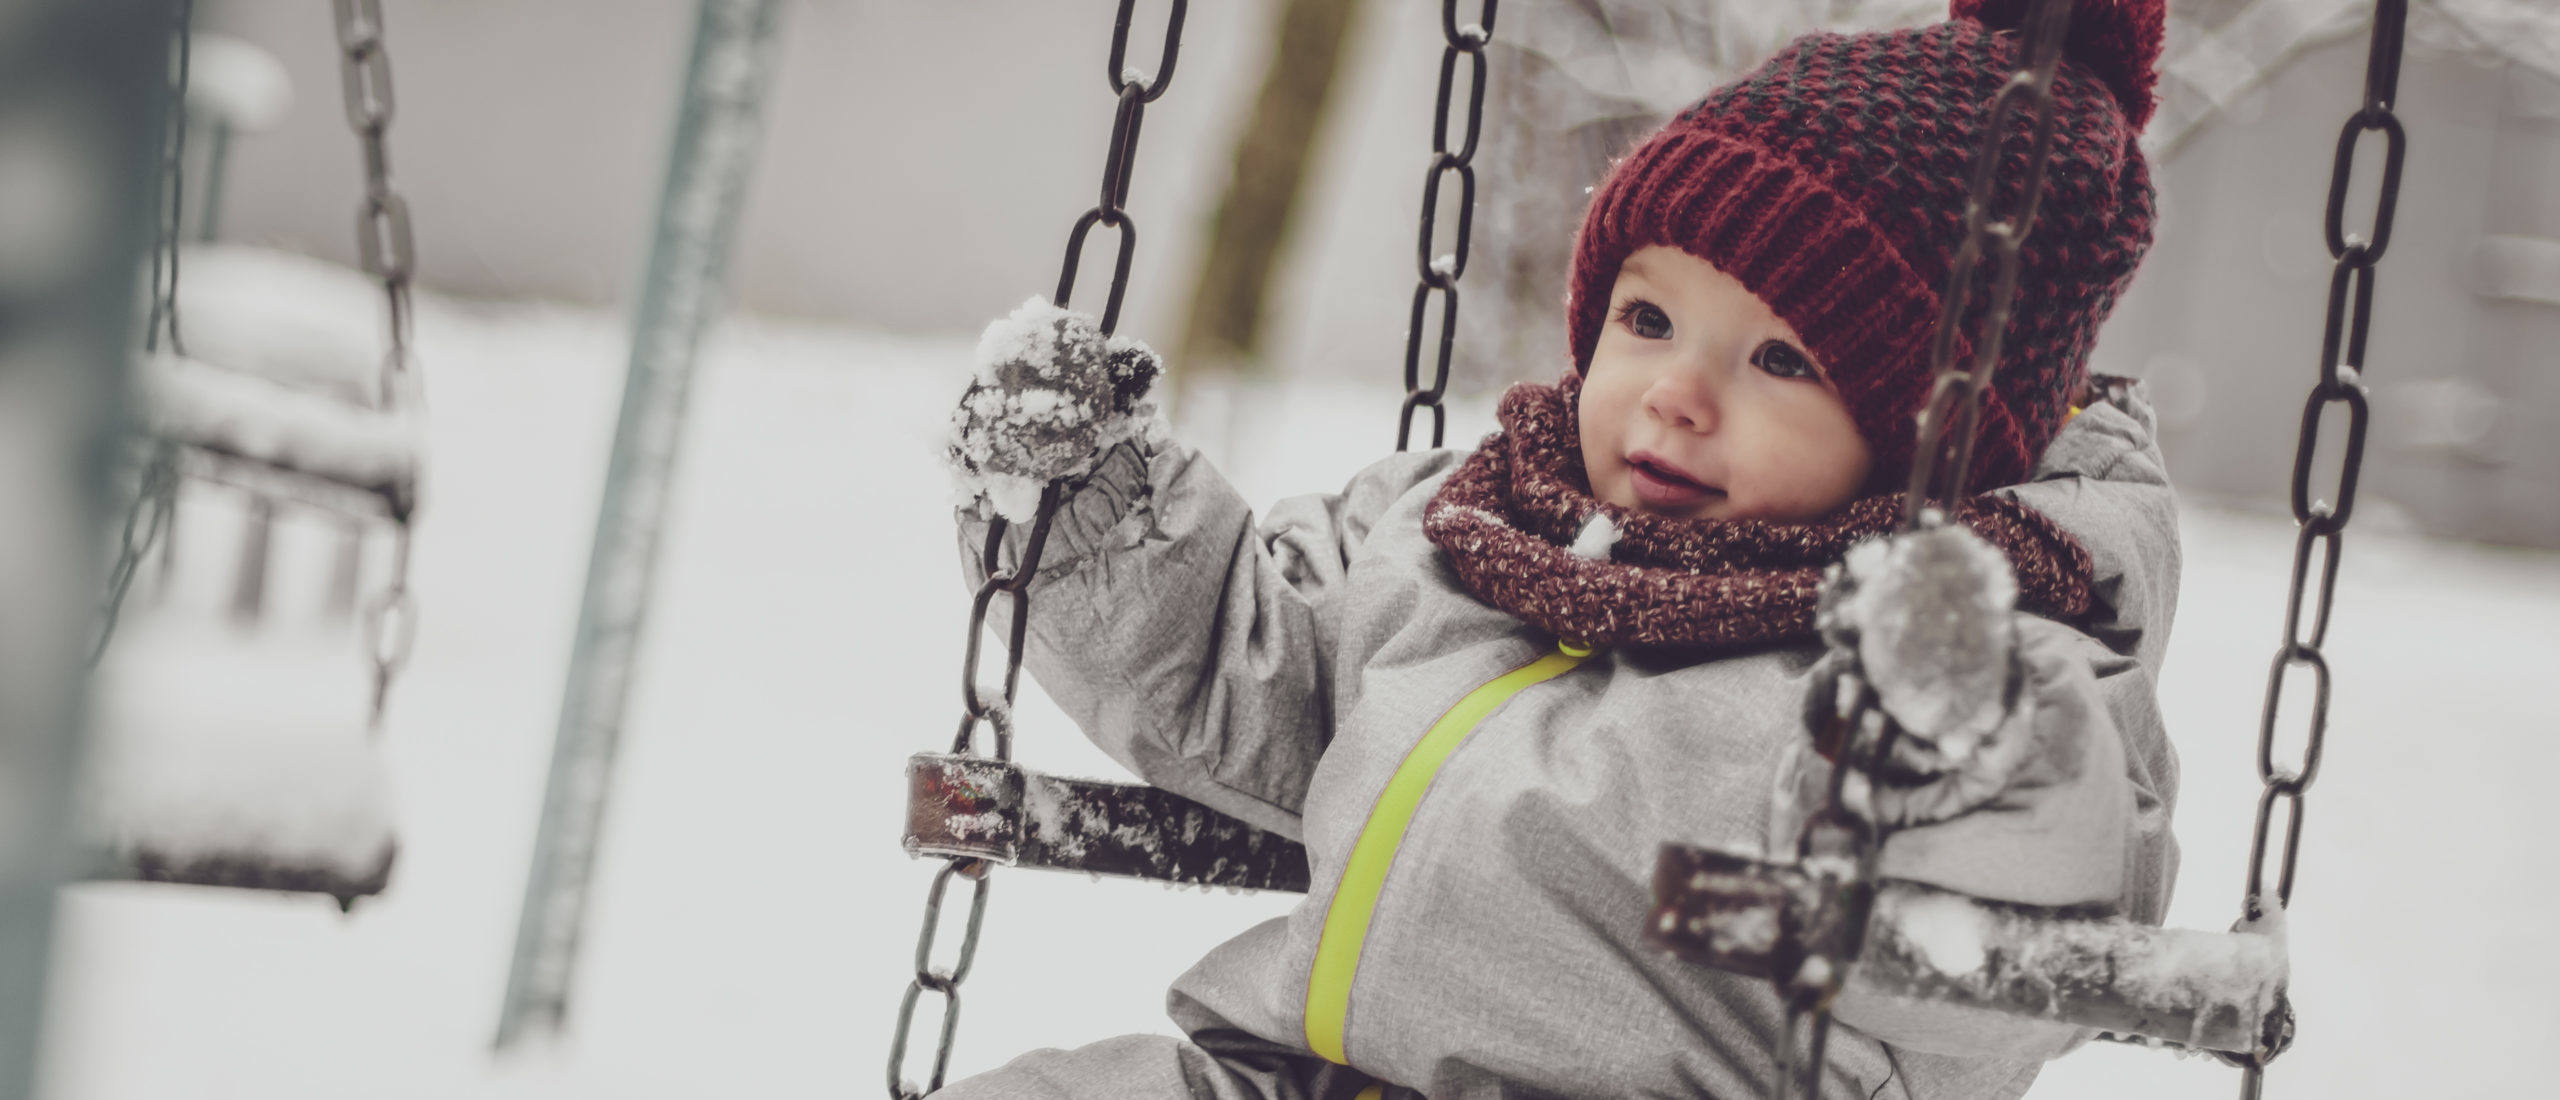 Toddler bundled in snow gear on a swing